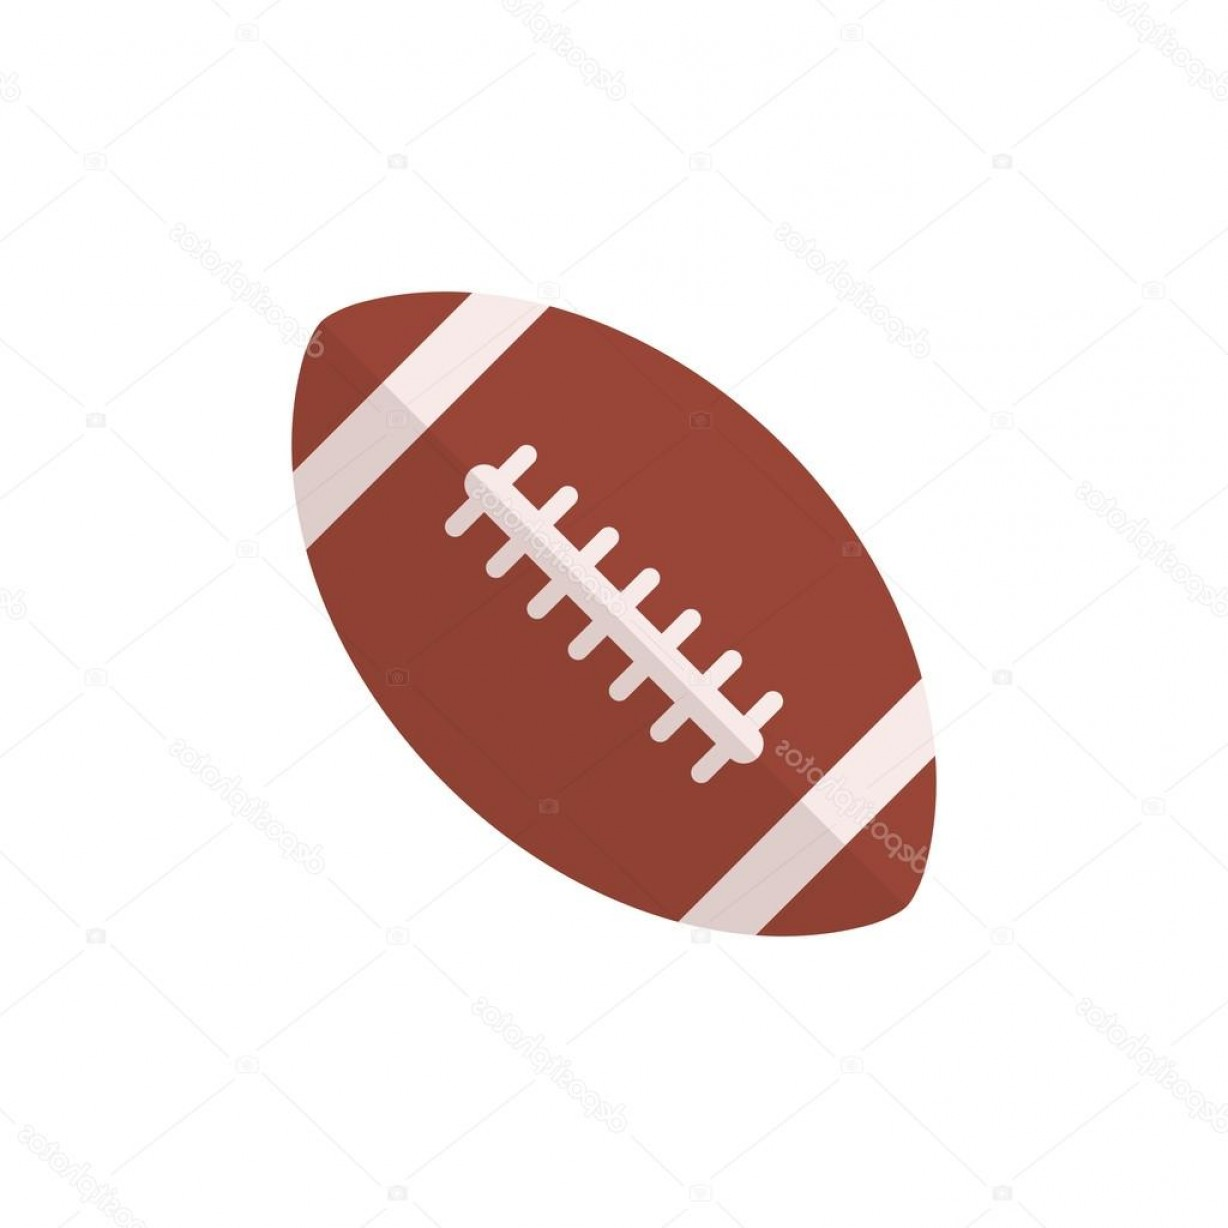 High Res Vector American Football: Stock Illustration American Football Ball Icon Modern